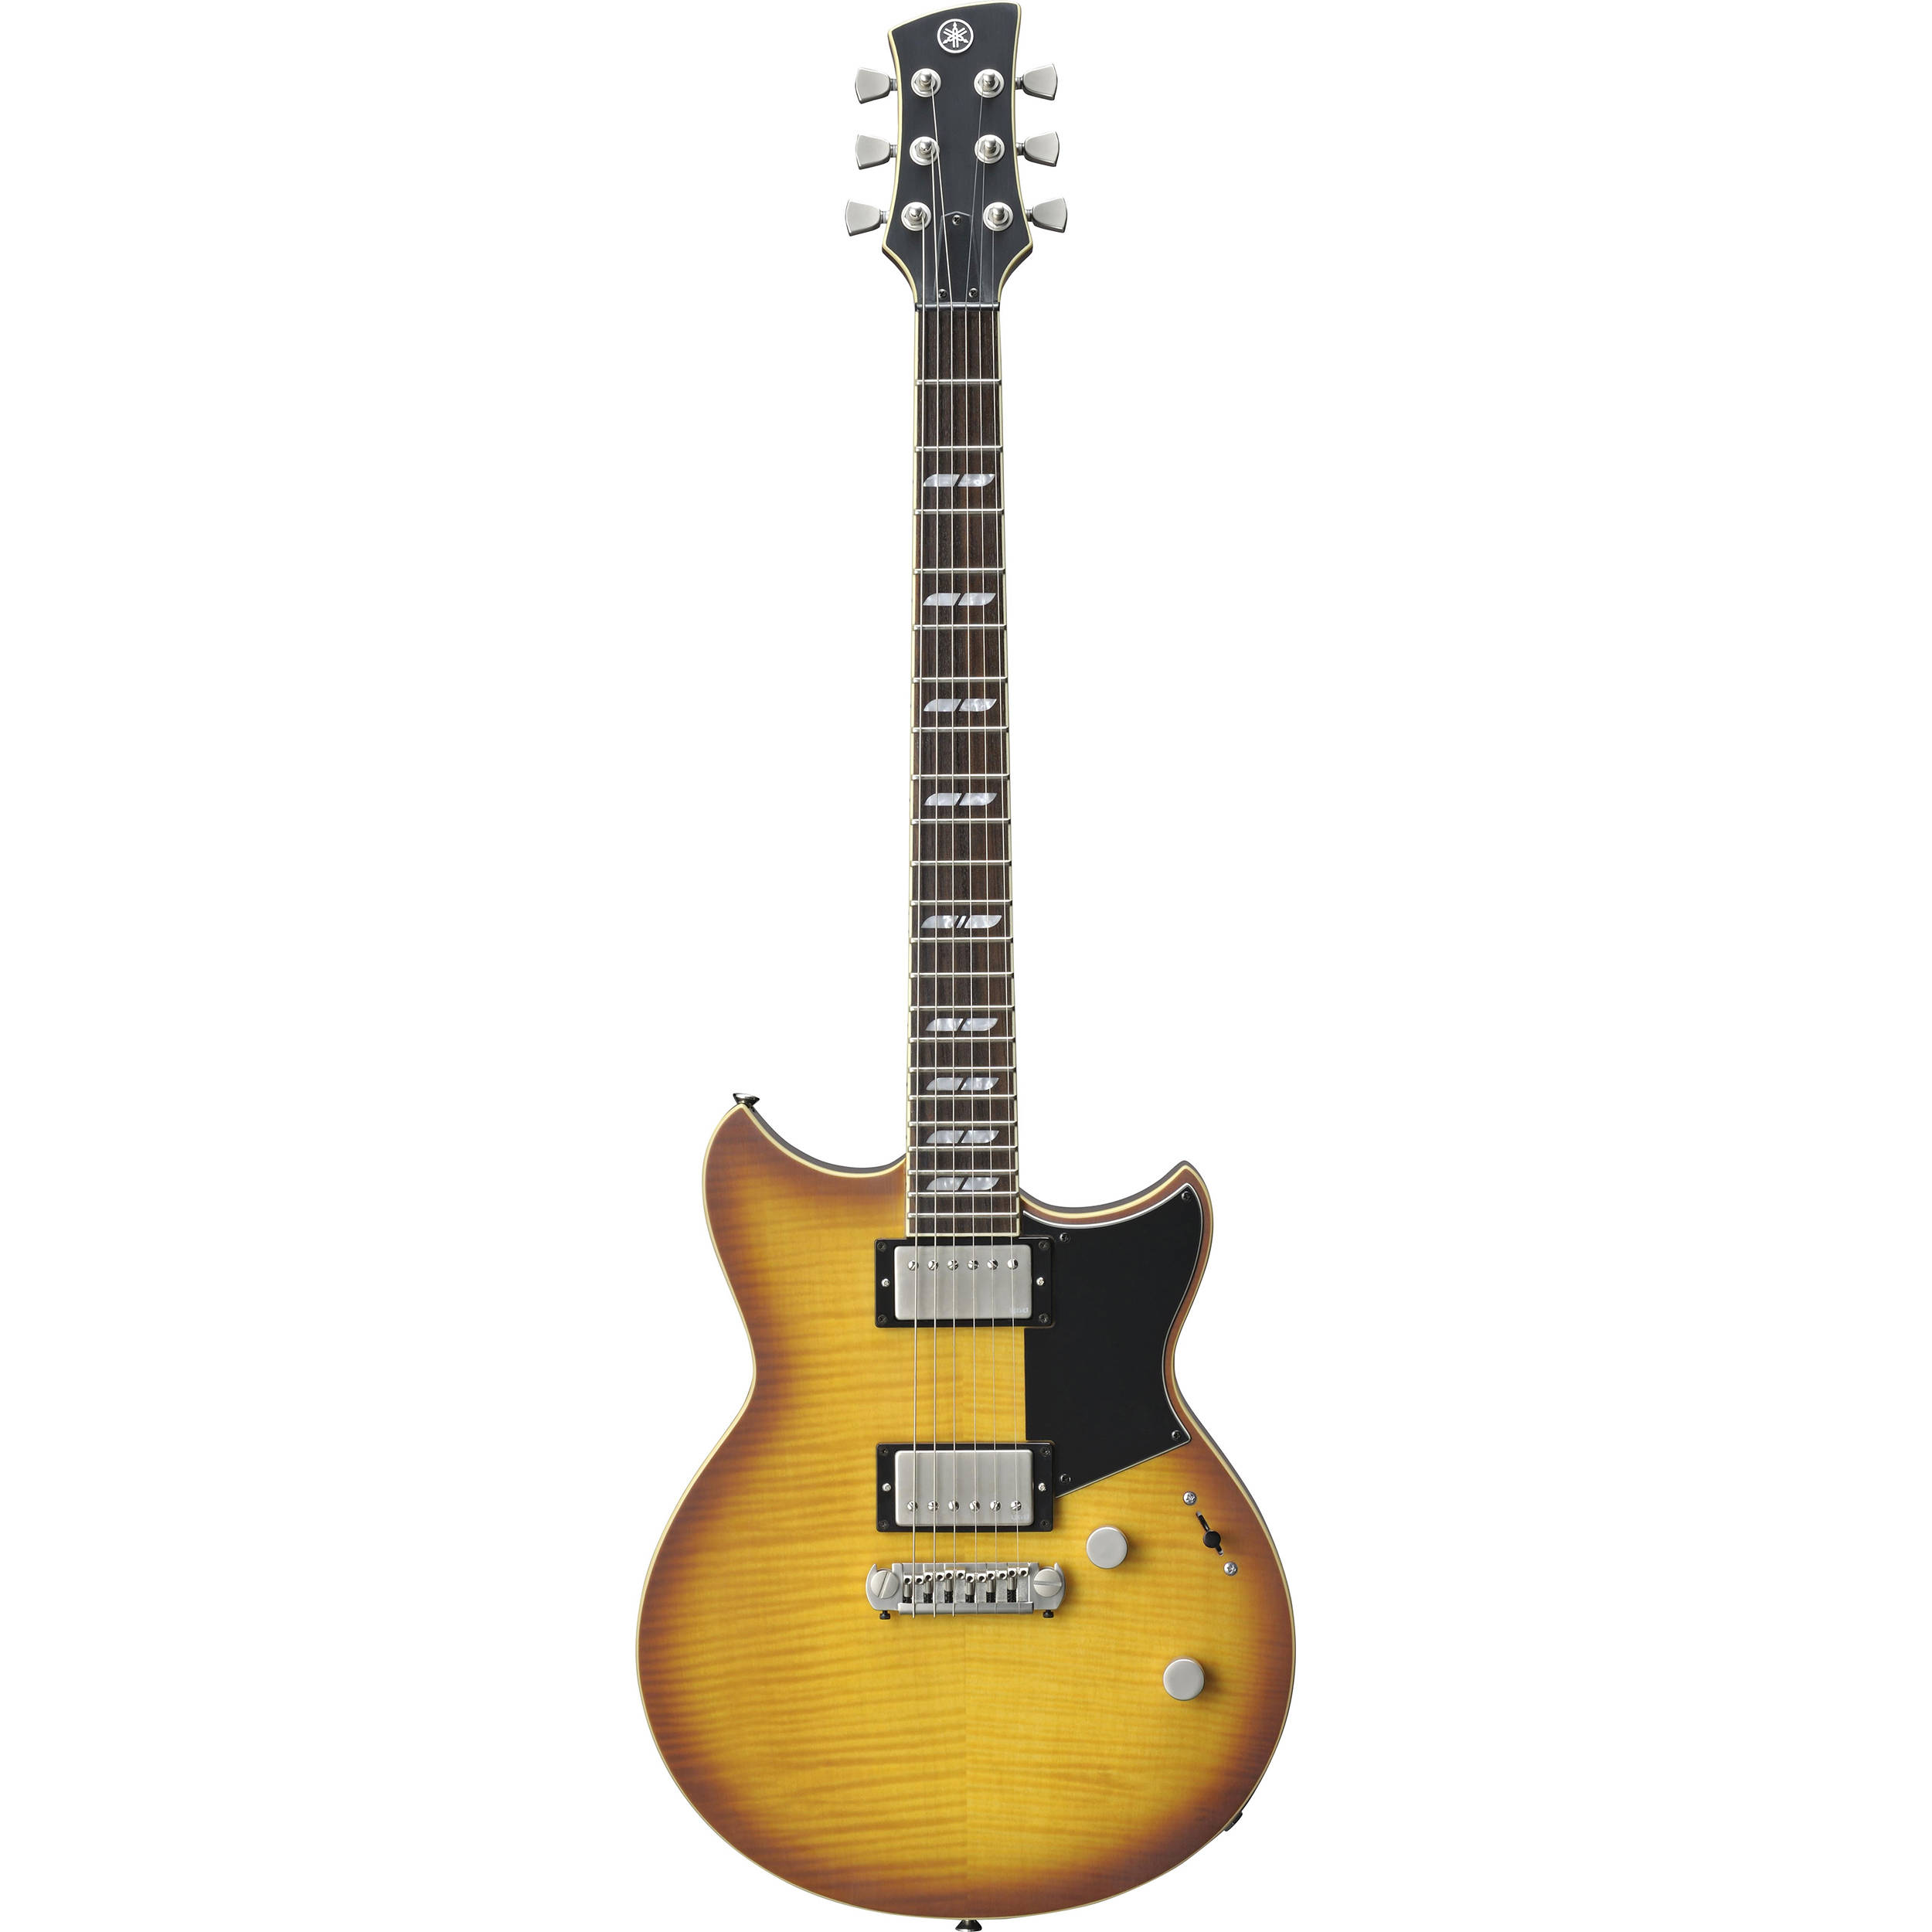 yamaha revstar rs620 electric guitar brick burst rs620 brb b h. Black Bedroom Furniture Sets. Home Design Ideas